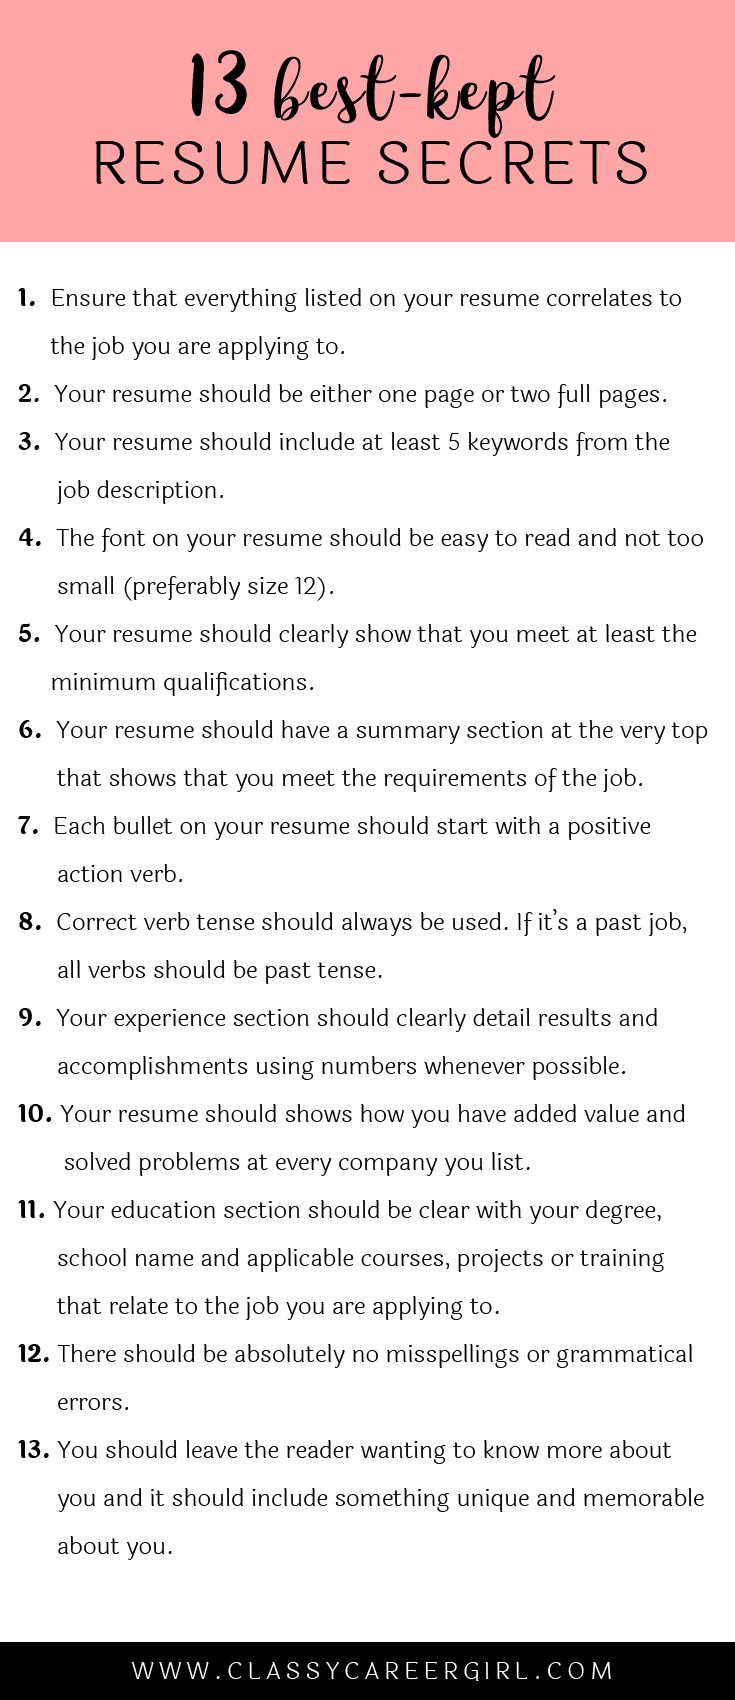 Opposenewapstandardsus  Unique  Ideas About Resume On Pinterest  Cv Format Resume Cv And  With Engaging Some Hiring Managers Will Toss Your Resume Out If You Dont Know These  With Comely National Resume Writers Association Also Nurse Resumes In Addition Examples Of High School Resumes And Server Description For Resume As Well As Sample Entry Level Resume Additionally Management Resume Examples From Pinterestcom With Opposenewapstandardsus  Engaging  Ideas About Resume On Pinterest  Cv Format Resume Cv And  With Comely Some Hiring Managers Will Toss Your Resume Out If You Dont Know These  And Unique National Resume Writers Association Also Nurse Resumes In Addition Examples Of High School Resumes From Pinterestcom